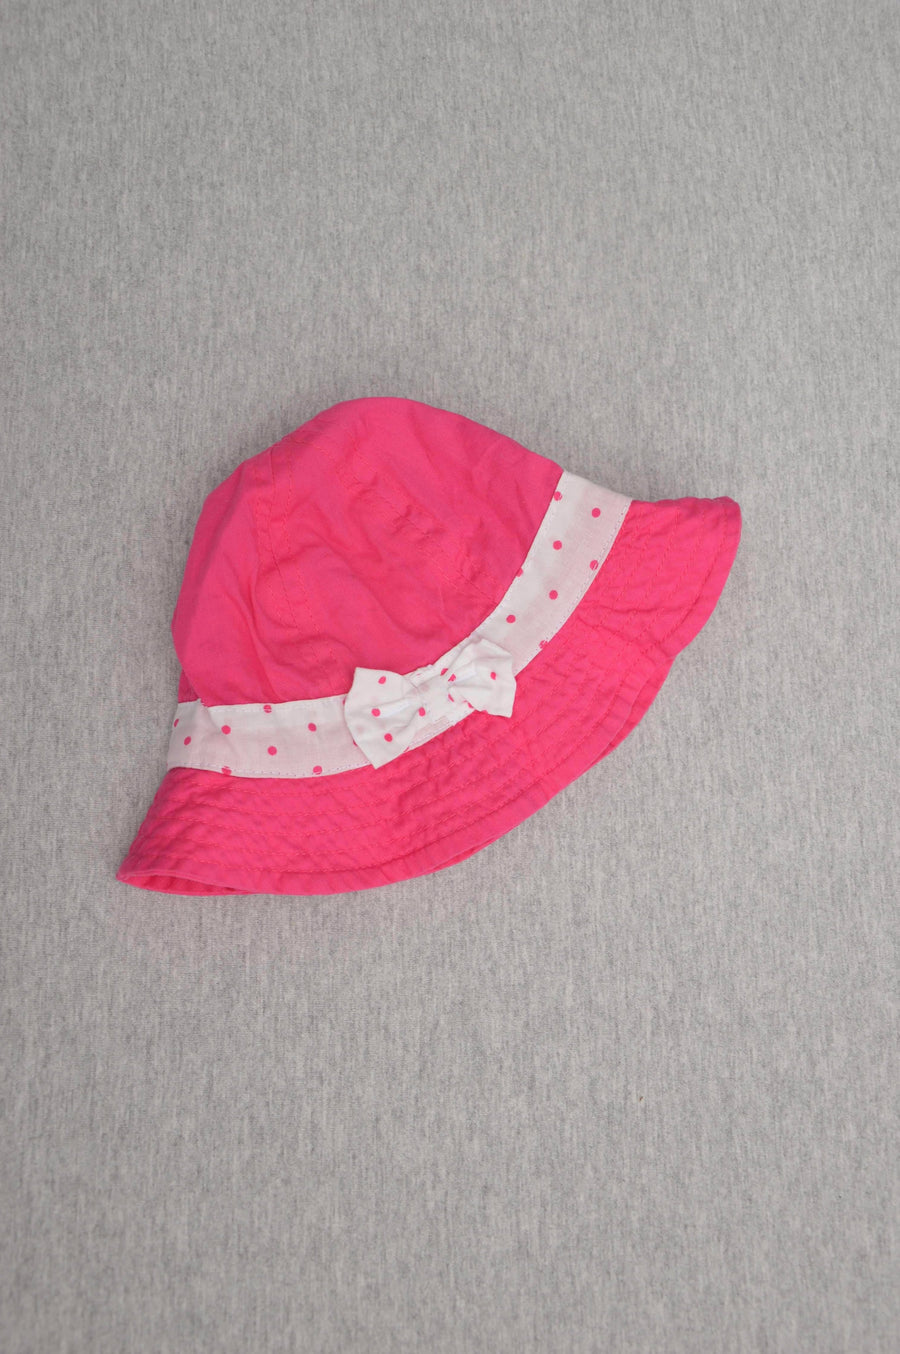 George - nearly new - pink bucket sunhat, size 0-3m